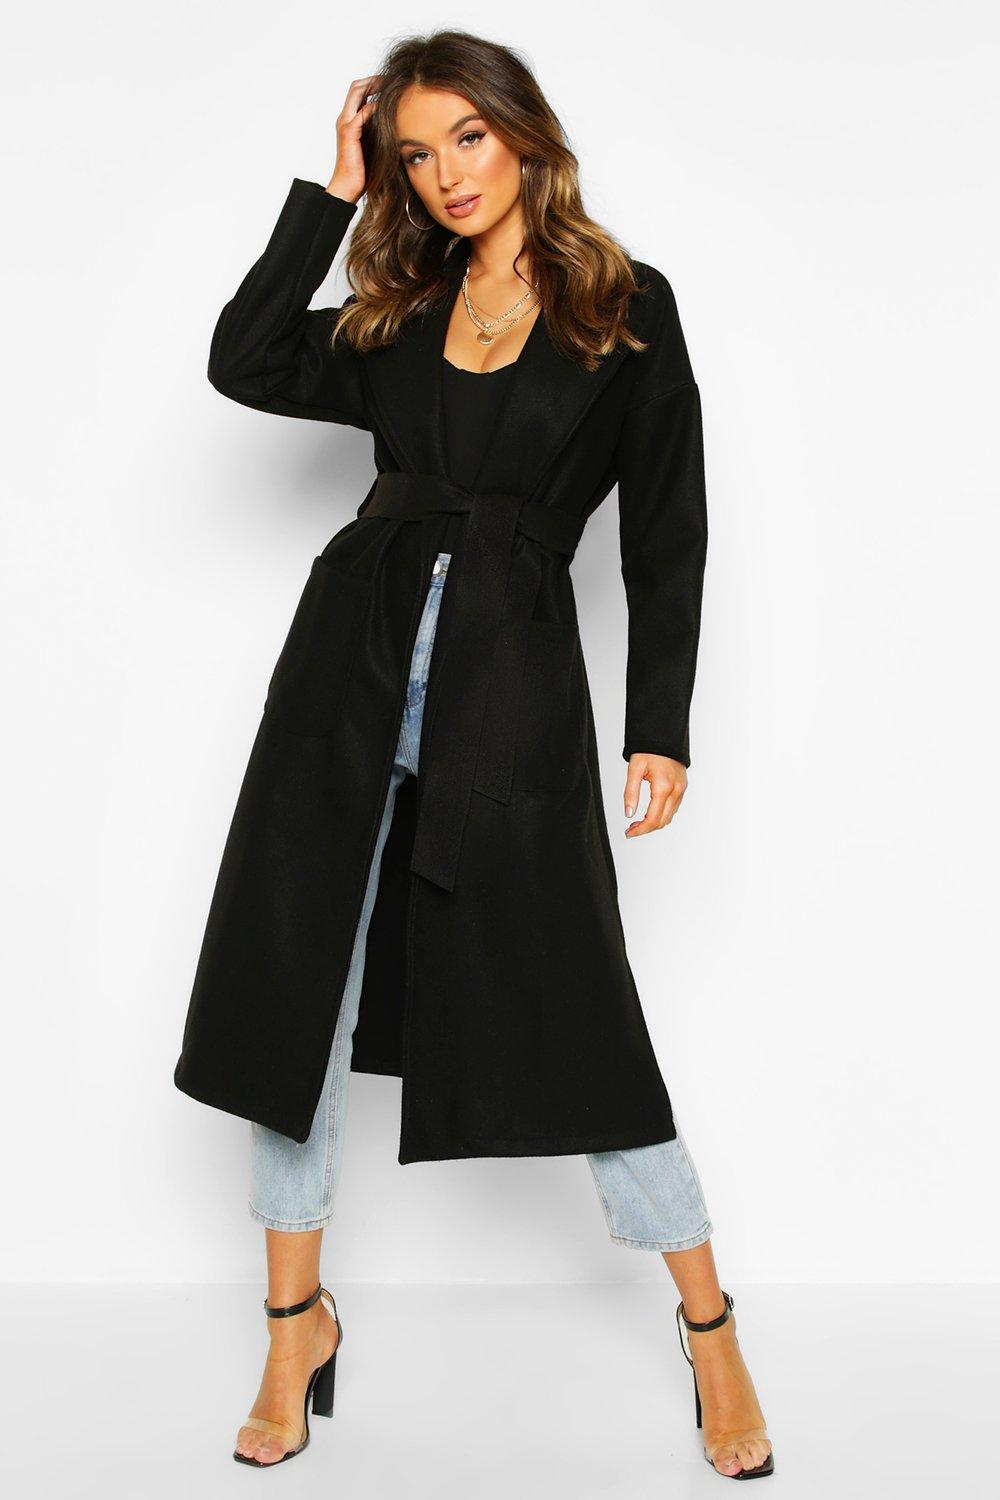 boohoo Womens Oversized Dressing Gown Belted Coat - Black - 14, Black